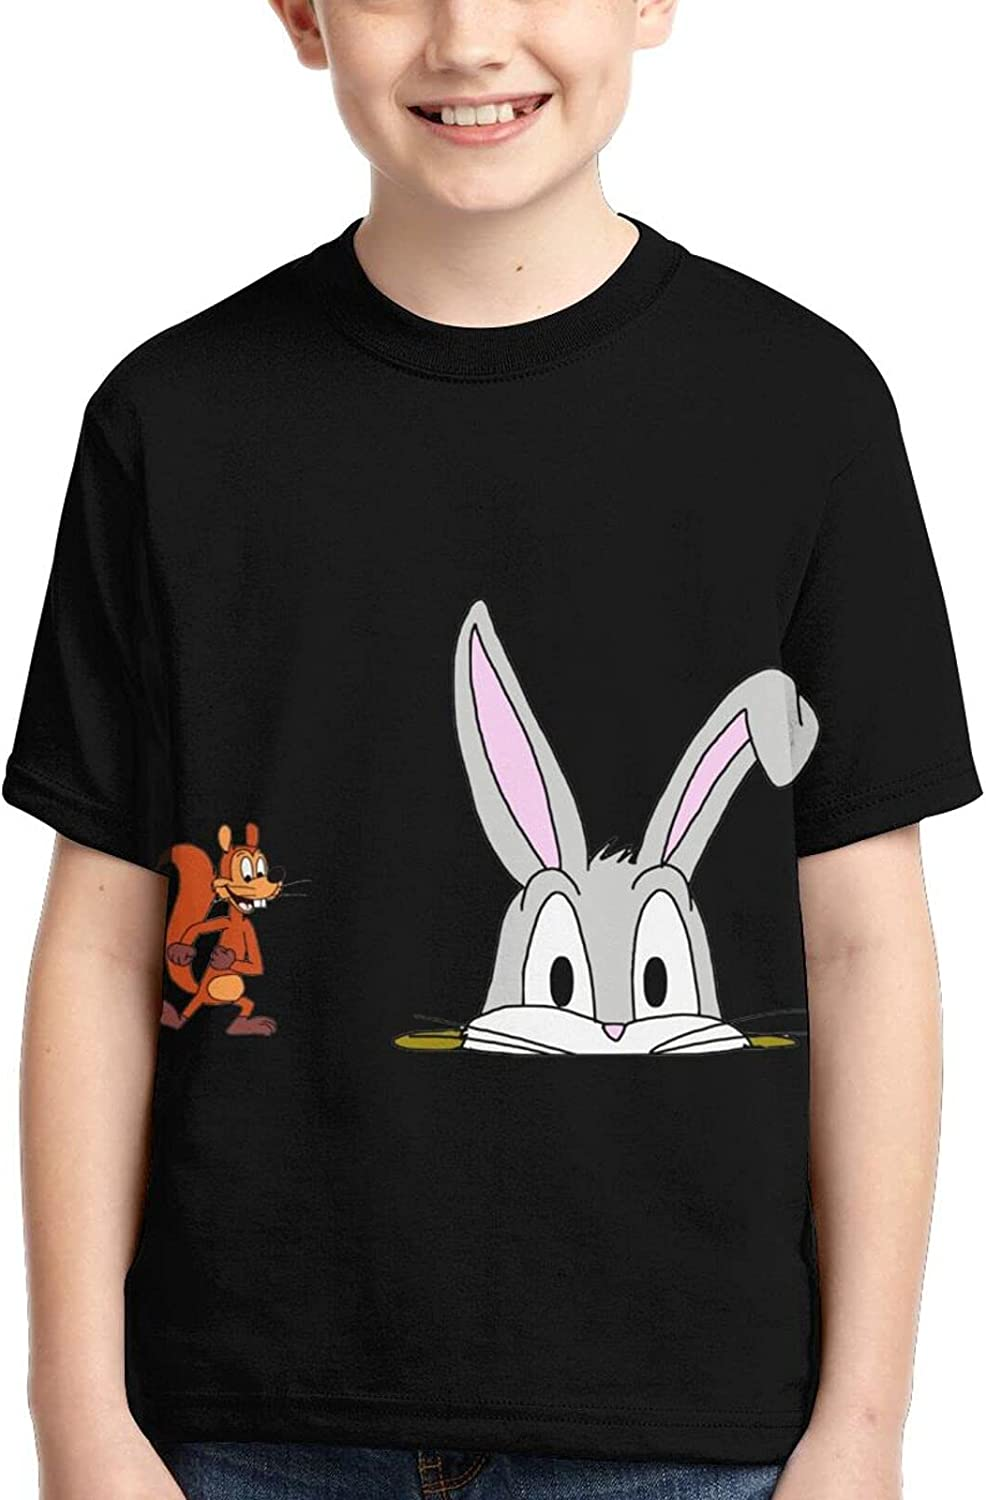 FANPANHE Bugs Bunny Fashion Cool T-Shirts Fort Worth Mall Super beauty product restock quality top! Boy Trend